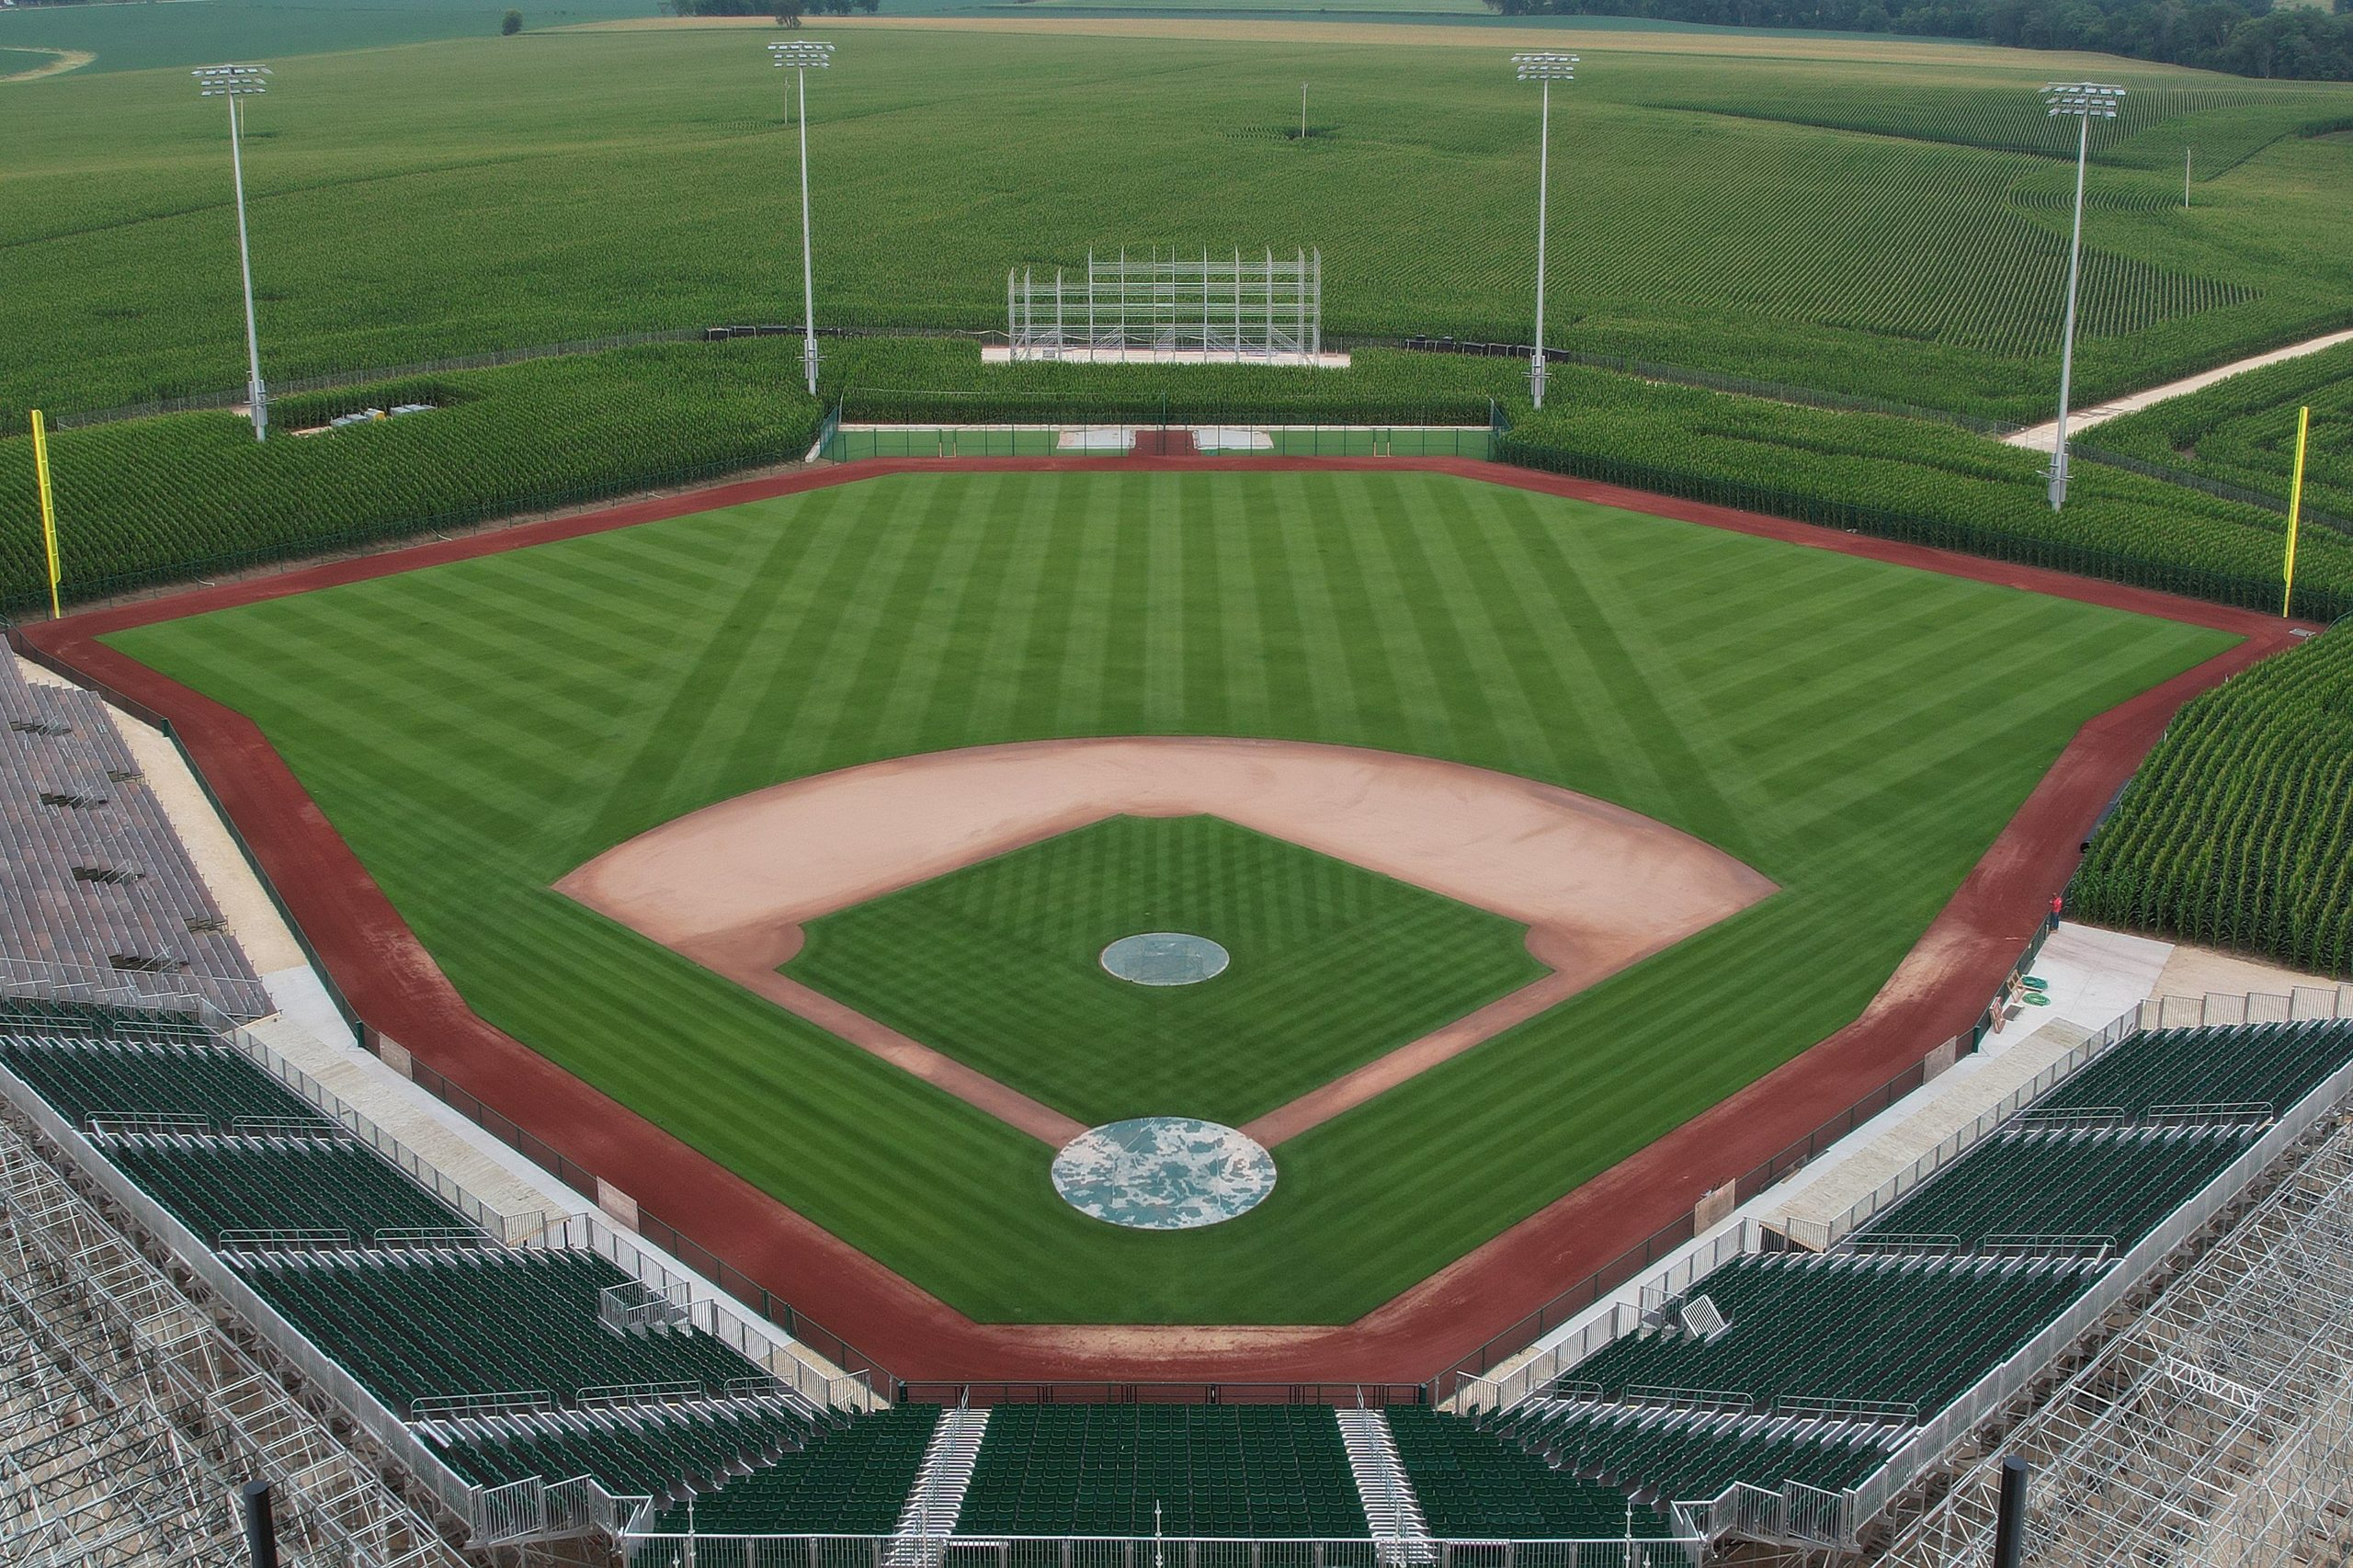 Mike Schur Will Create a TV Series Based on Field of Dreams